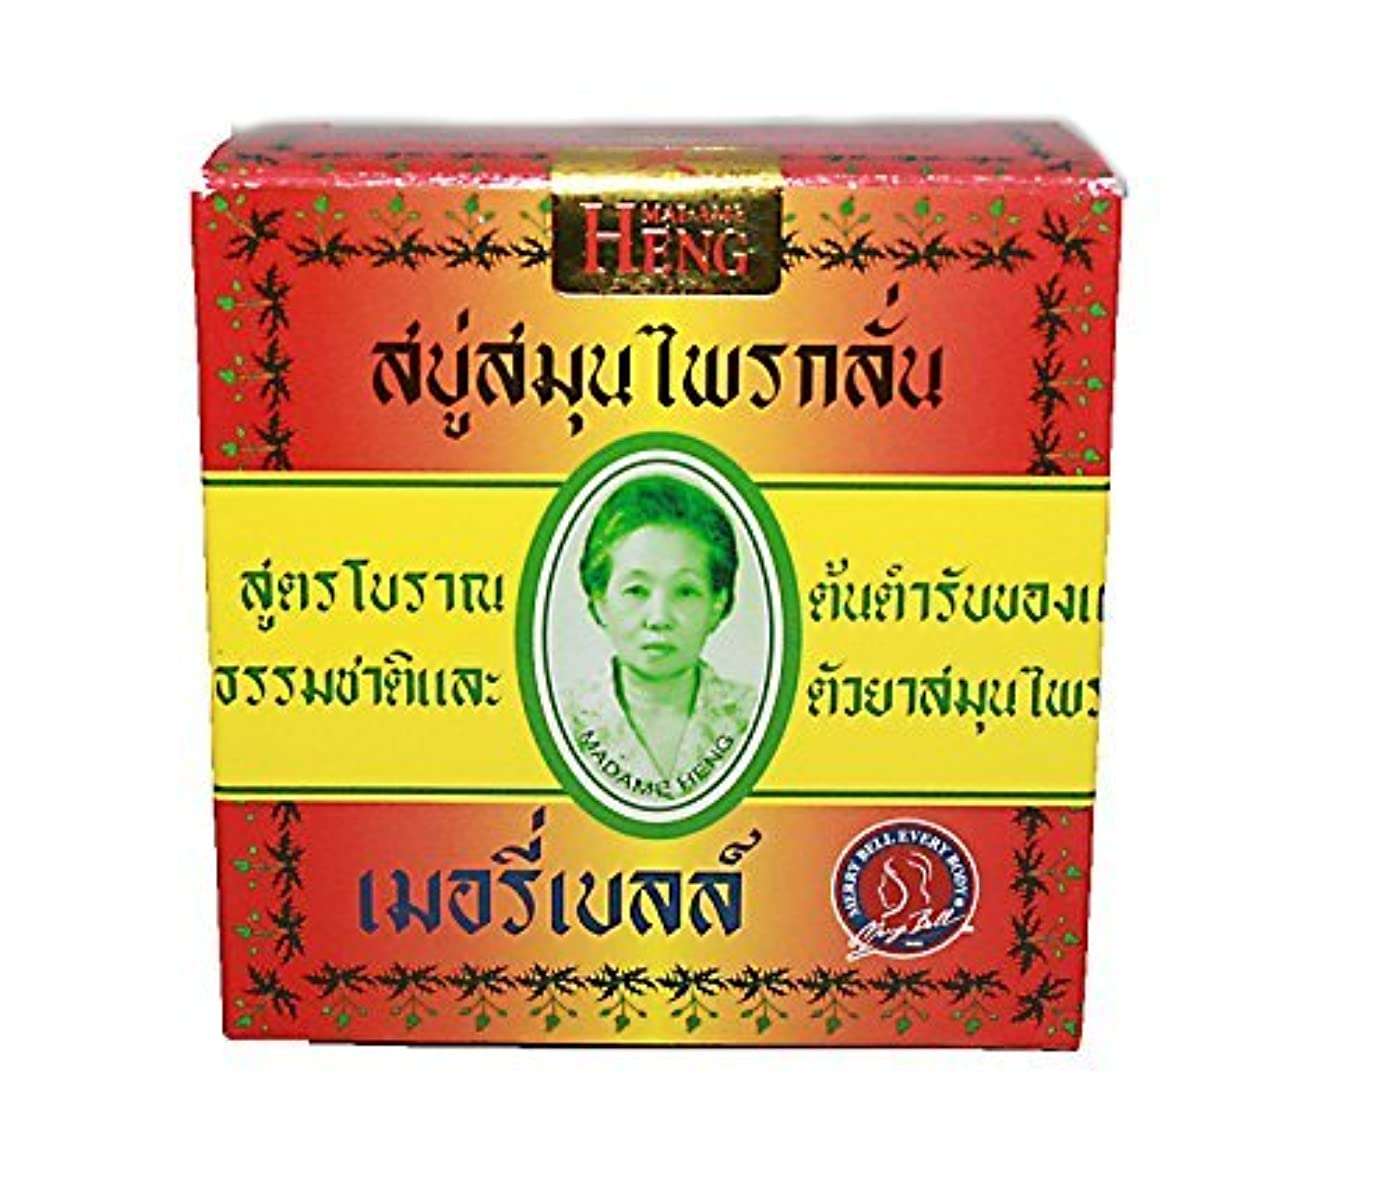 のれん前進オークランドMADAME HENG NATURAL SOAP BAR MERRY BELL ORIGINAL THAI (net wt 5.64 OZ.or 160g.) by onefeelgood shop